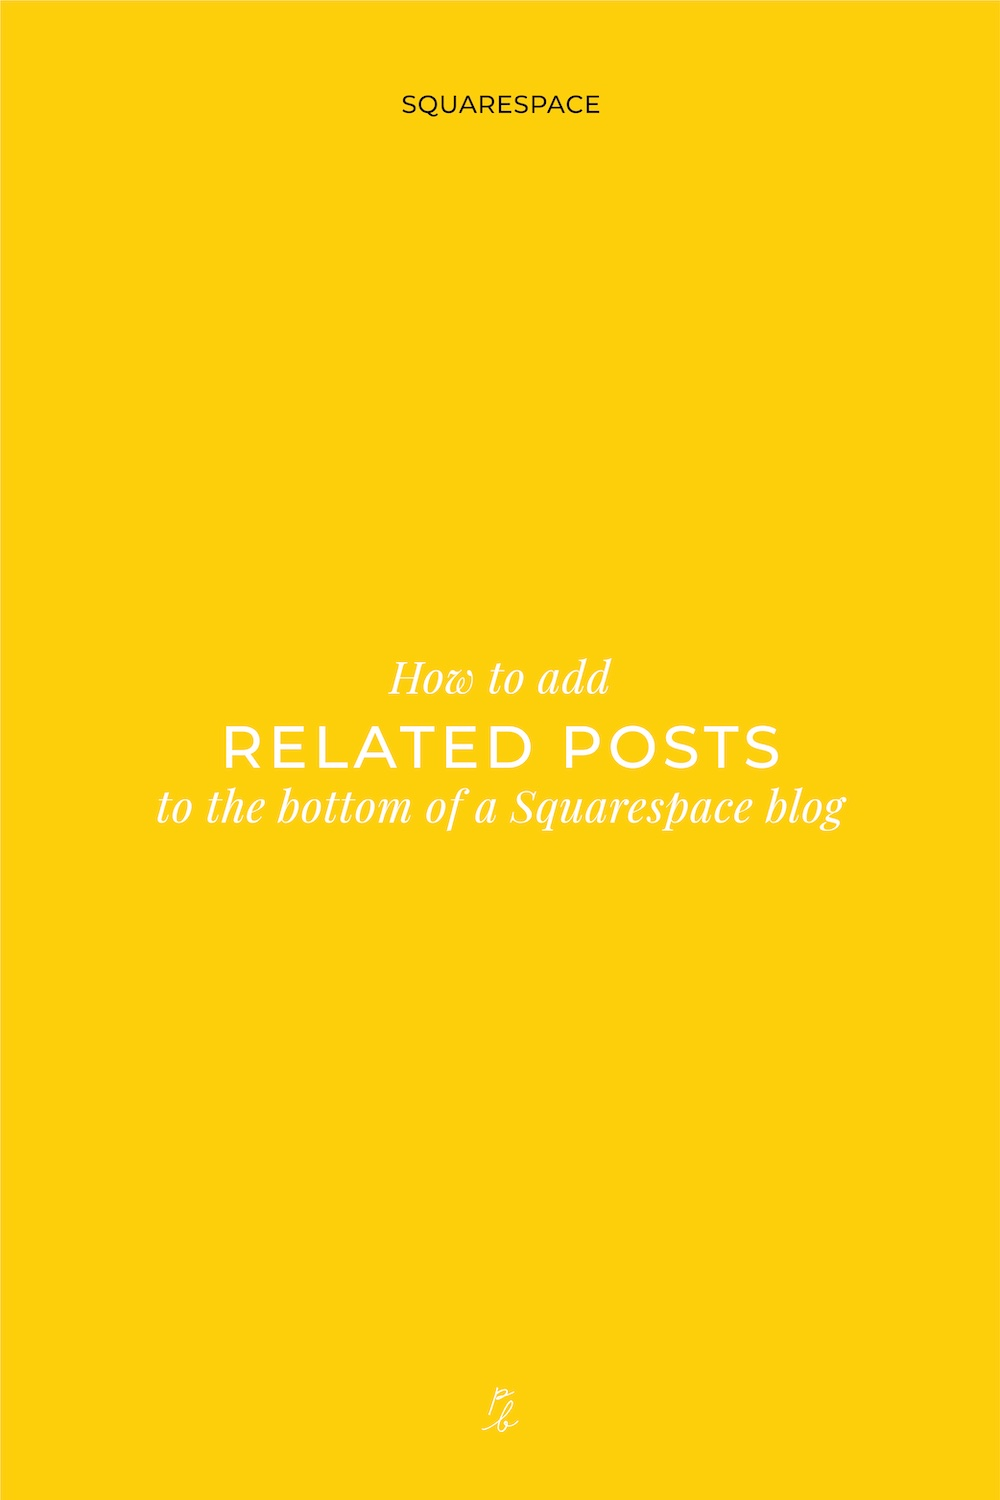 5-How to add related posts to the bottom of a Squarespace blog.jpg